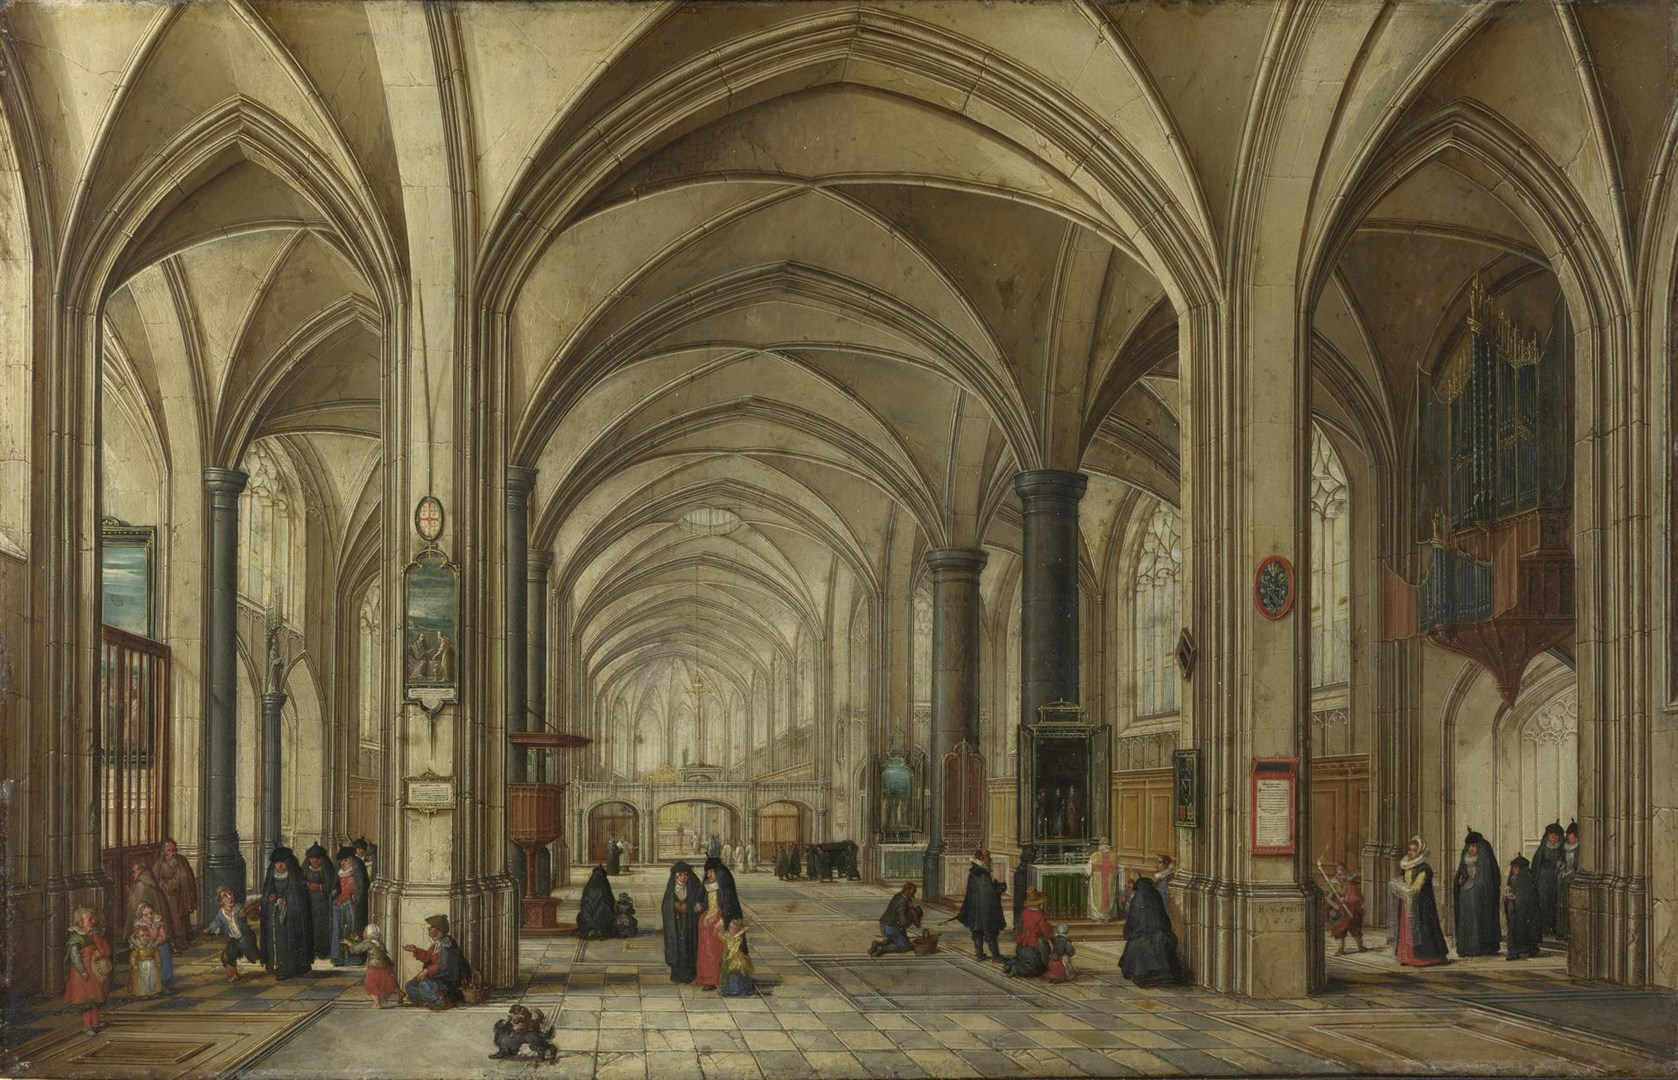 The Interior of a Gothic Church looking East by Hendrick van Steenwyck the Younger and Jan Brueghel the Elder